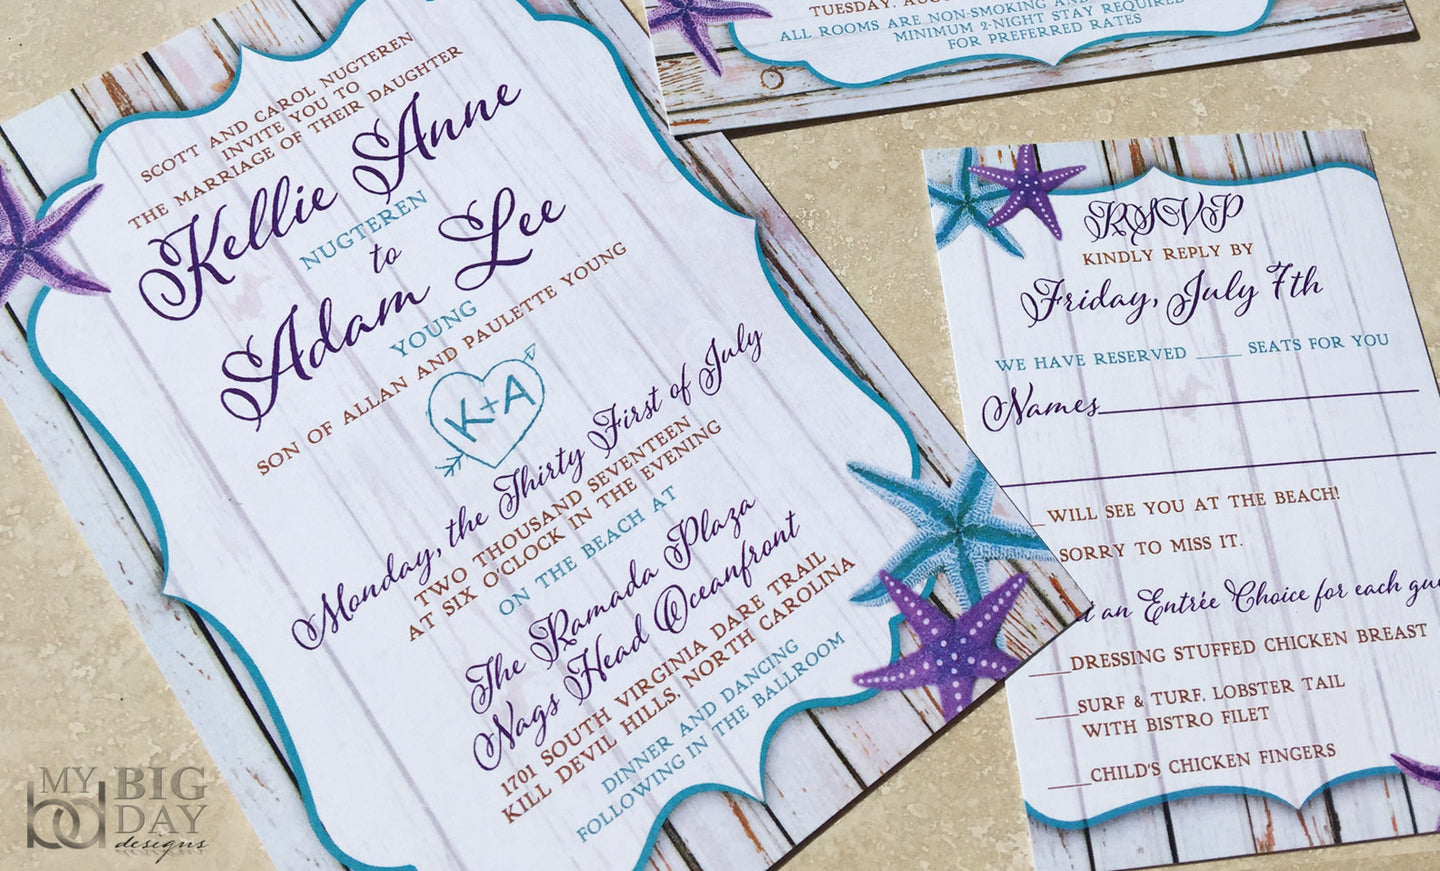 Boardwalk Starfish Wedding Invitation Set My Big Day Designscom